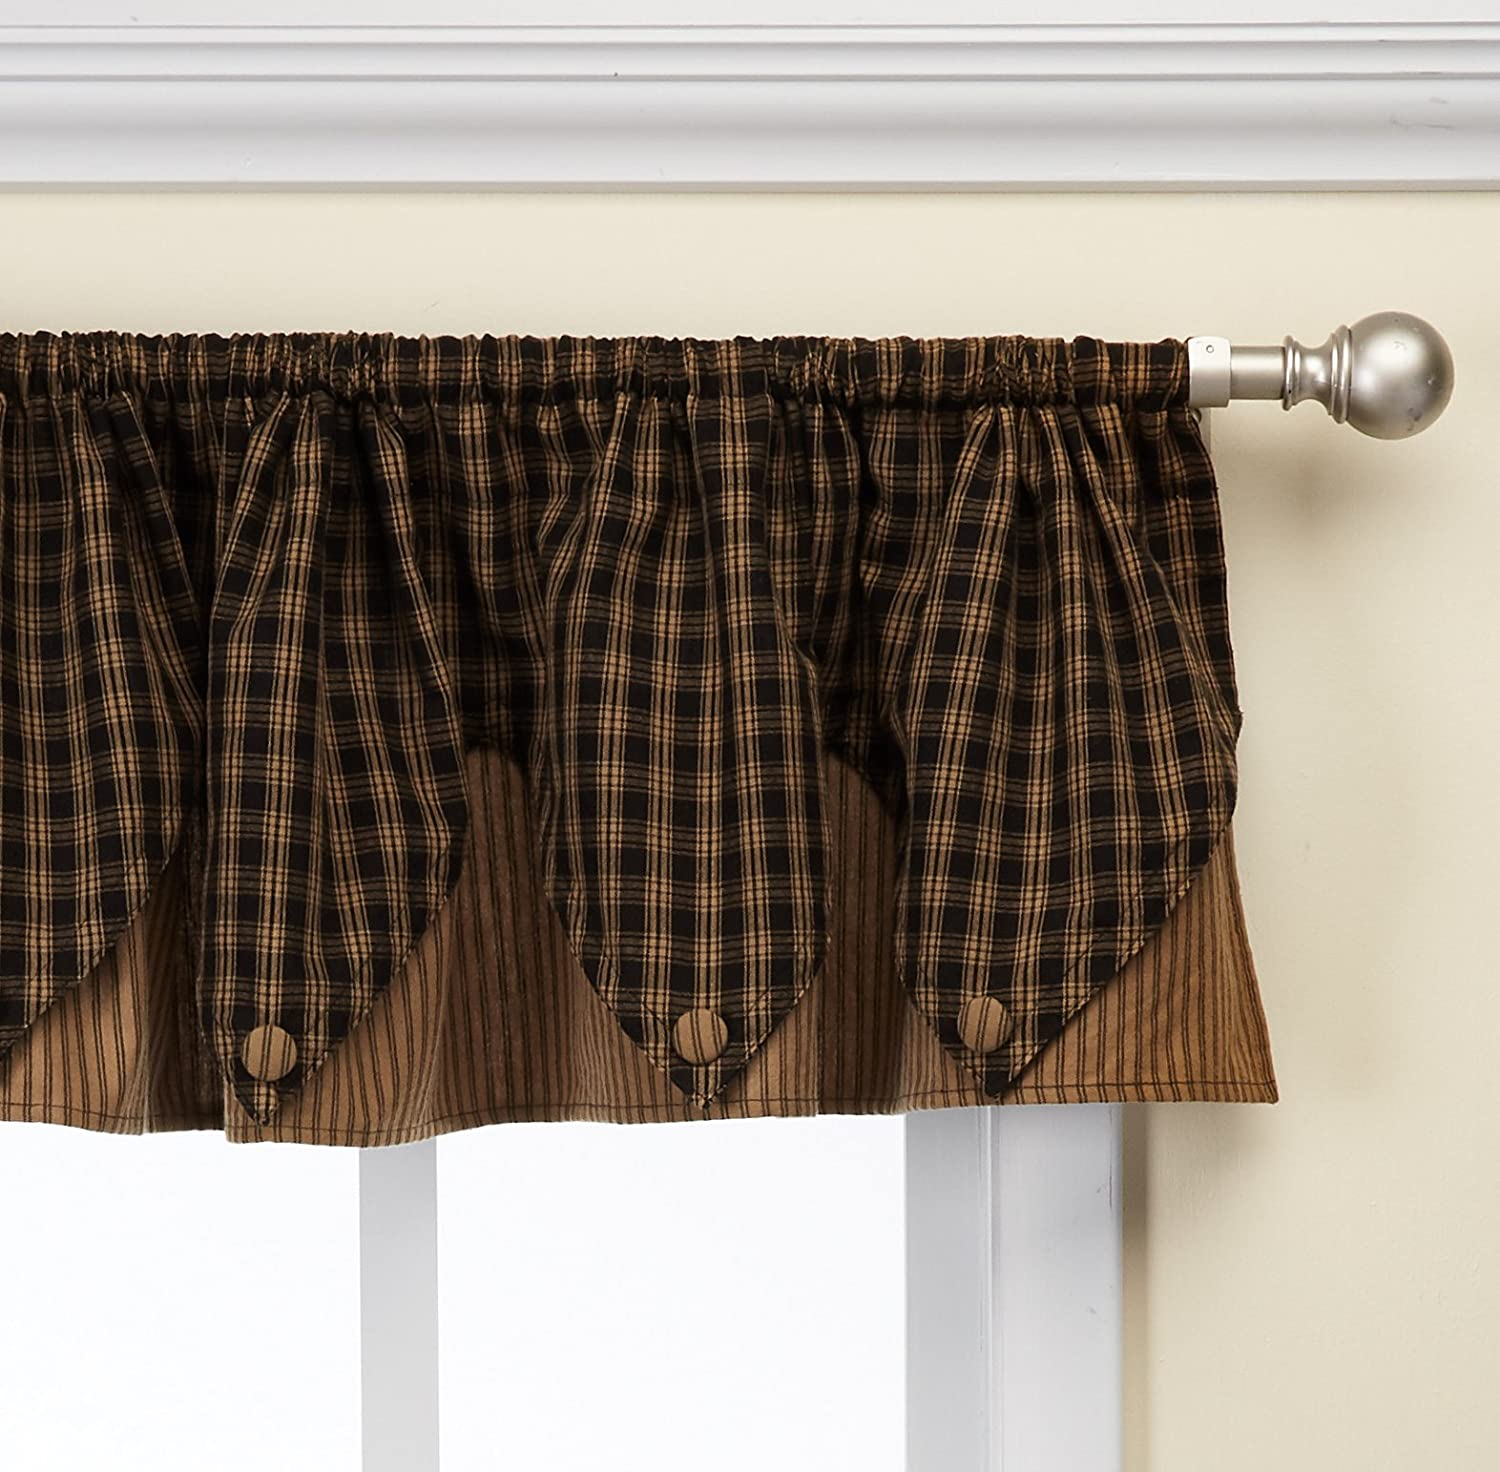 Park Designs Sturbridge Valance, 72 by 14